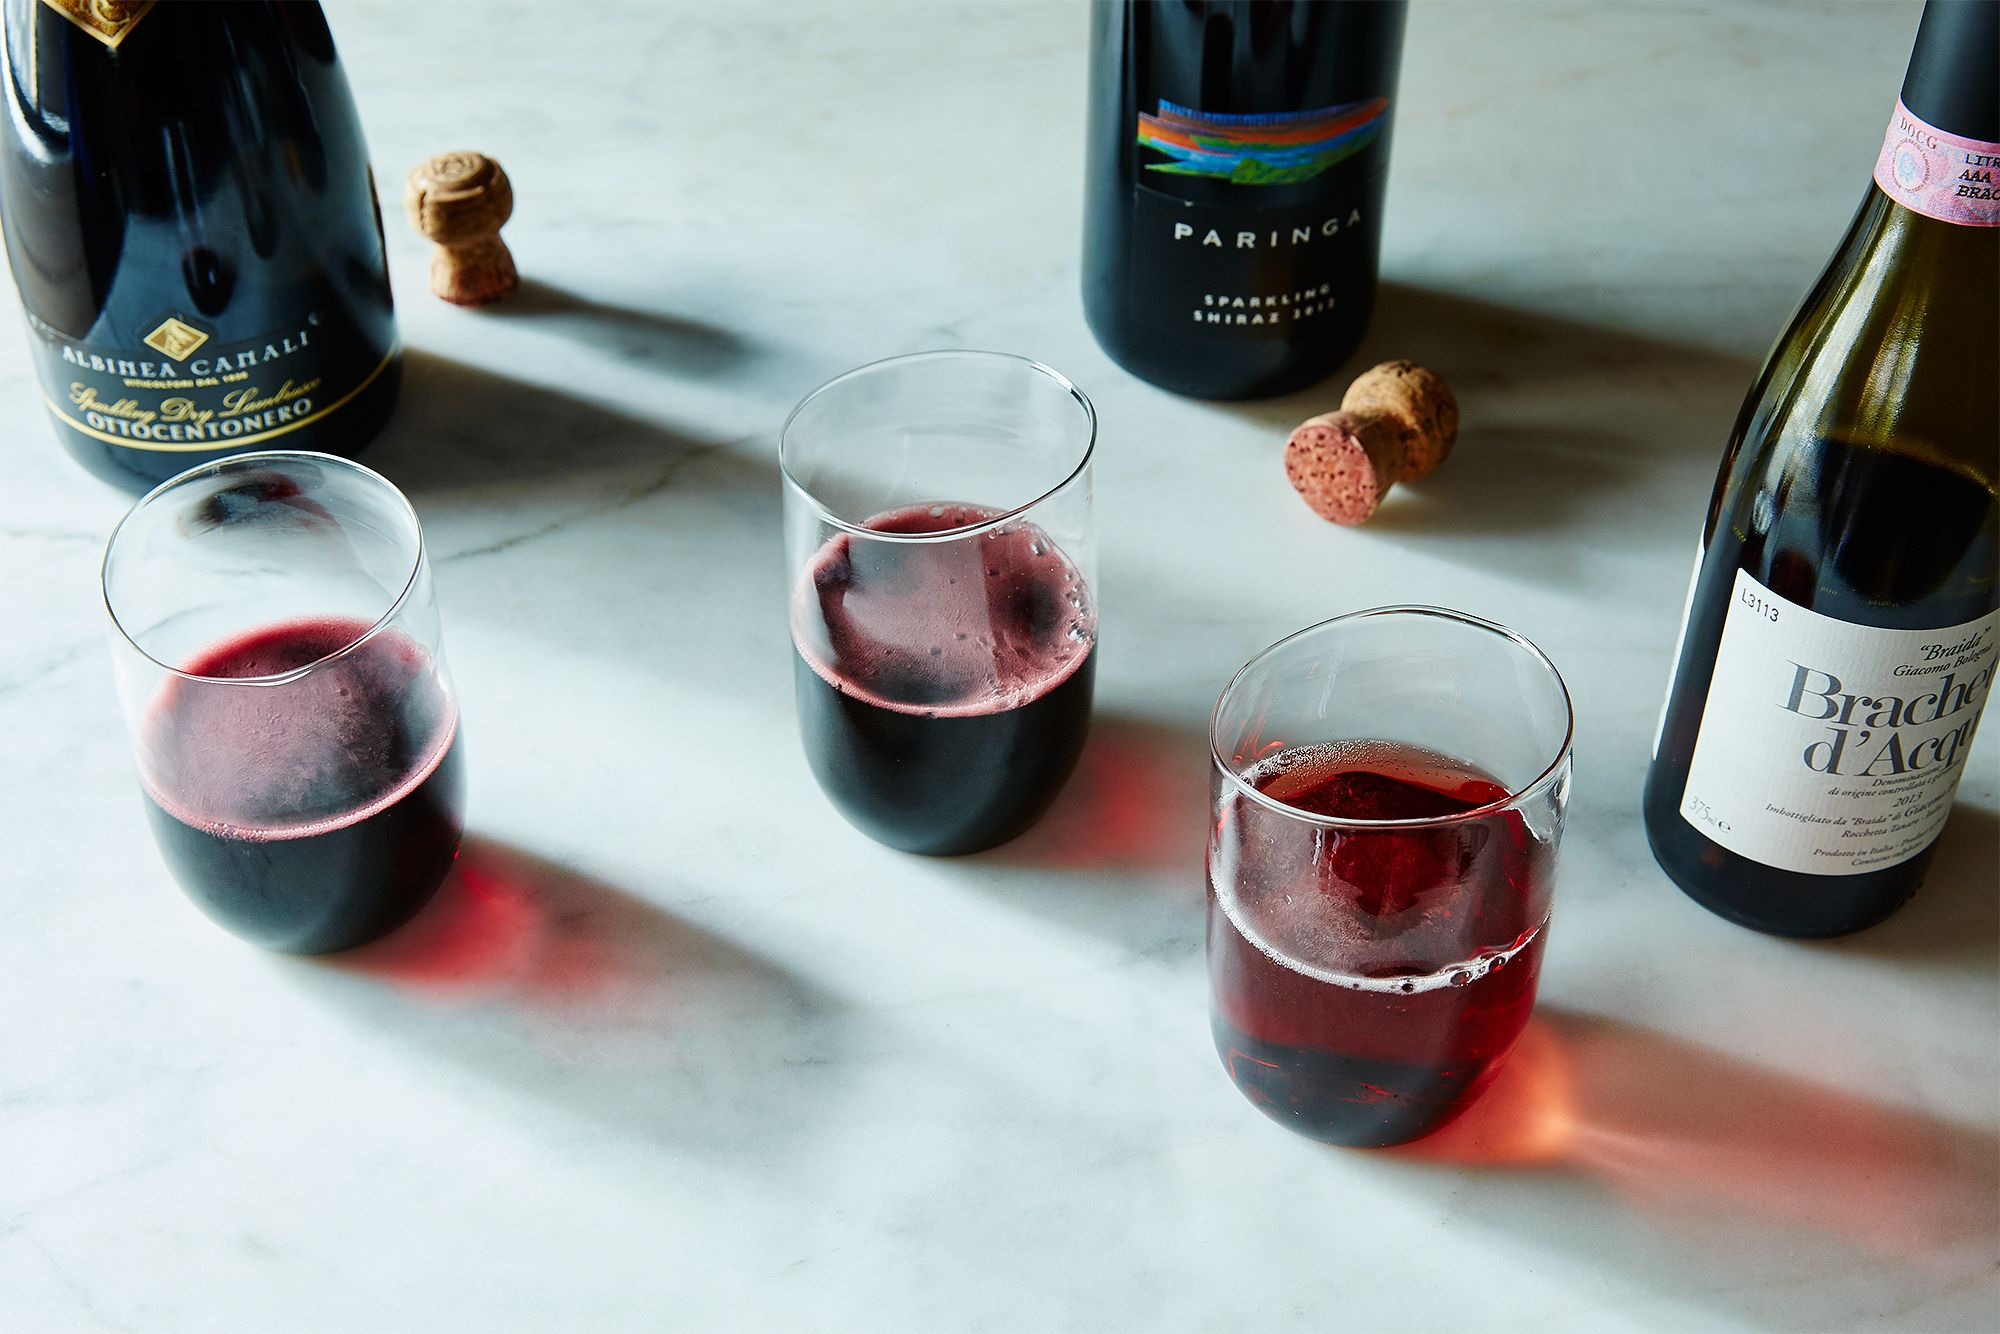 Yes There Are Sparkling Red Wines That Taste Good